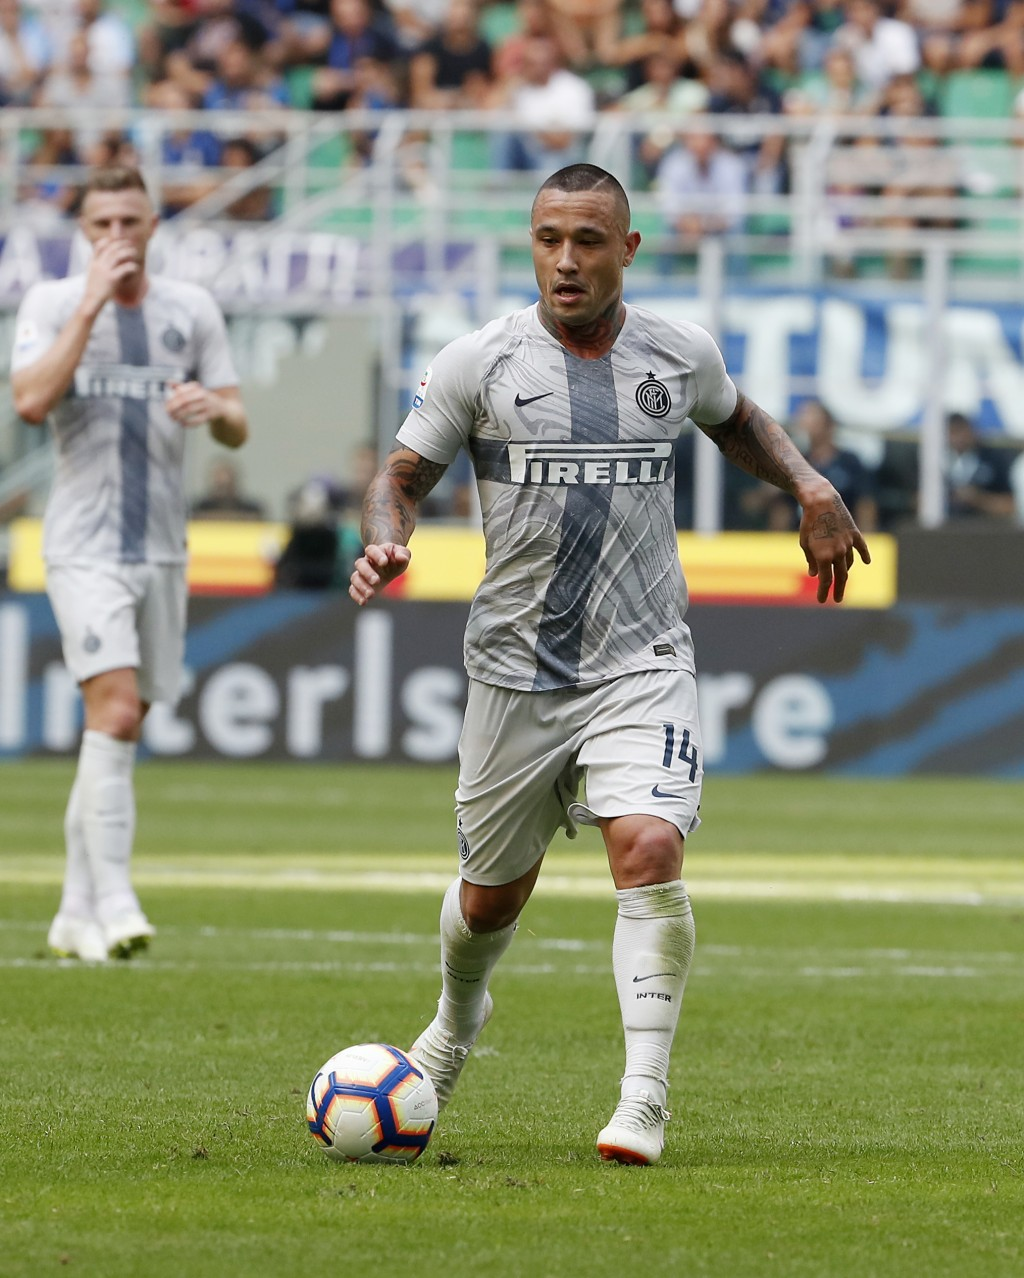 FILE - In this Saturday, Sept. 15, 2018 file photo Inter Milan's Radja Nainggolan controls the ball during the Serie A soccer match between Inter Mila...